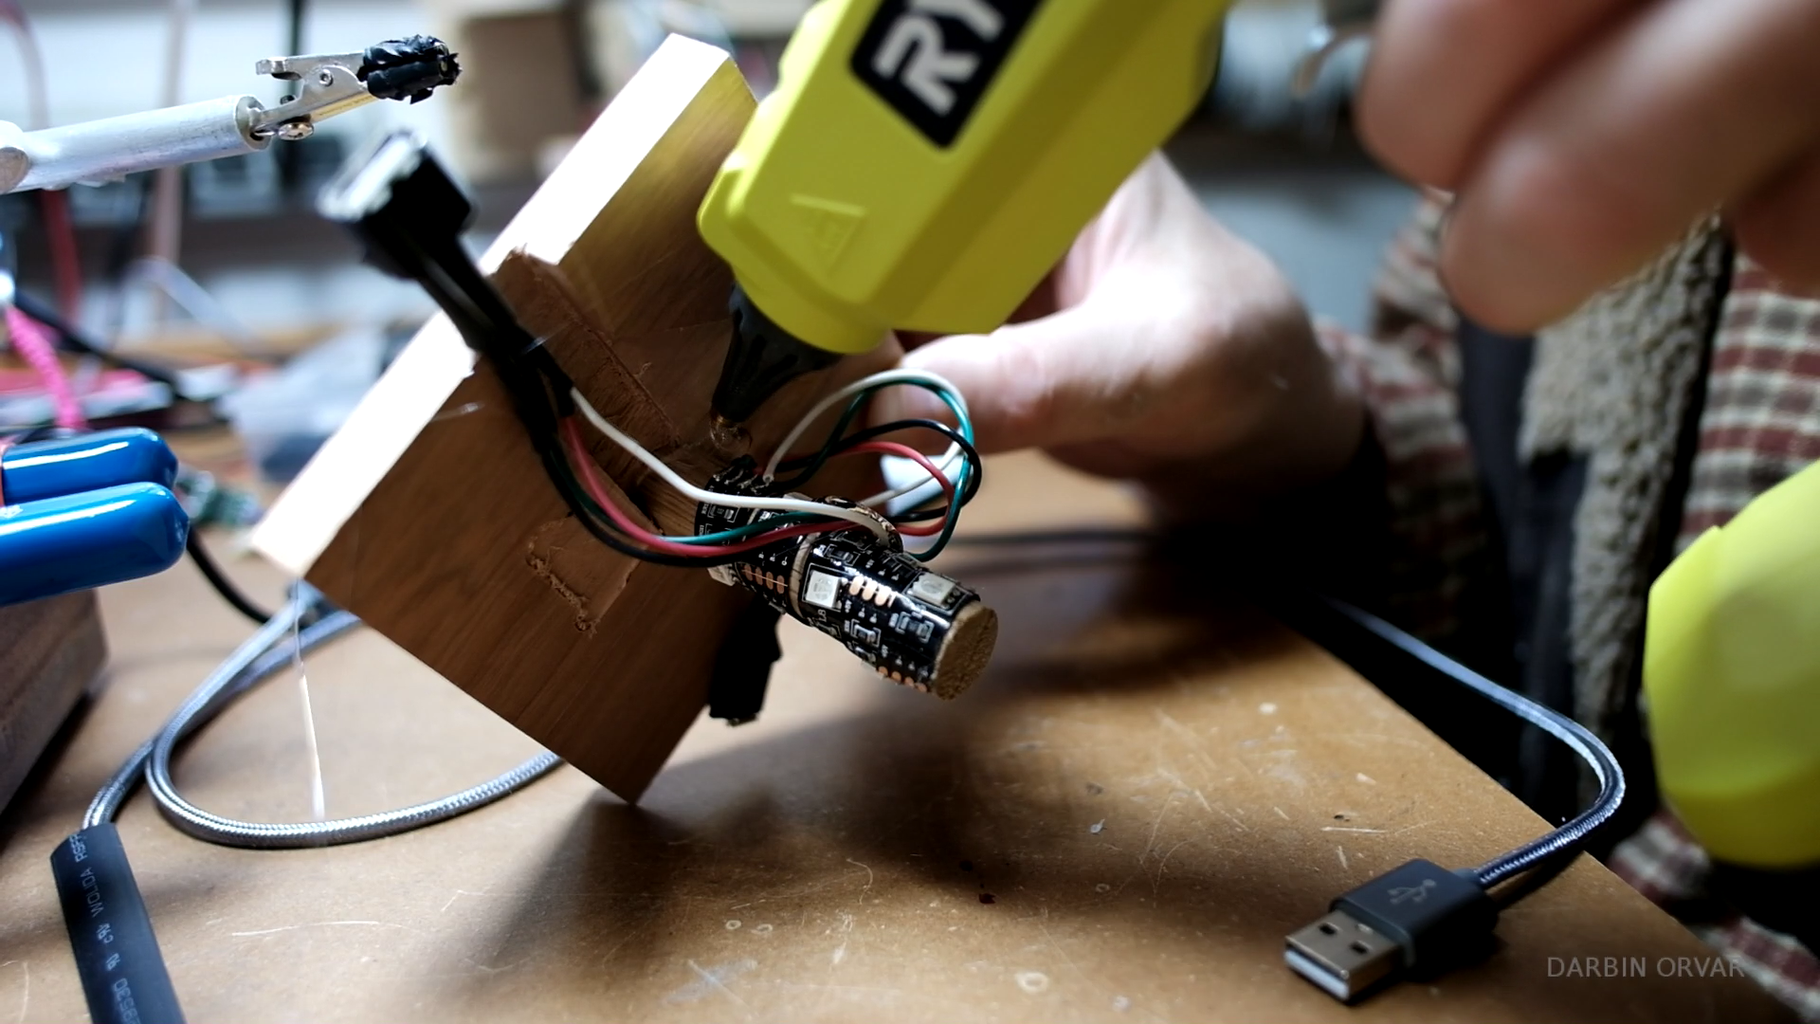 Attaching the Dowel & Connectors